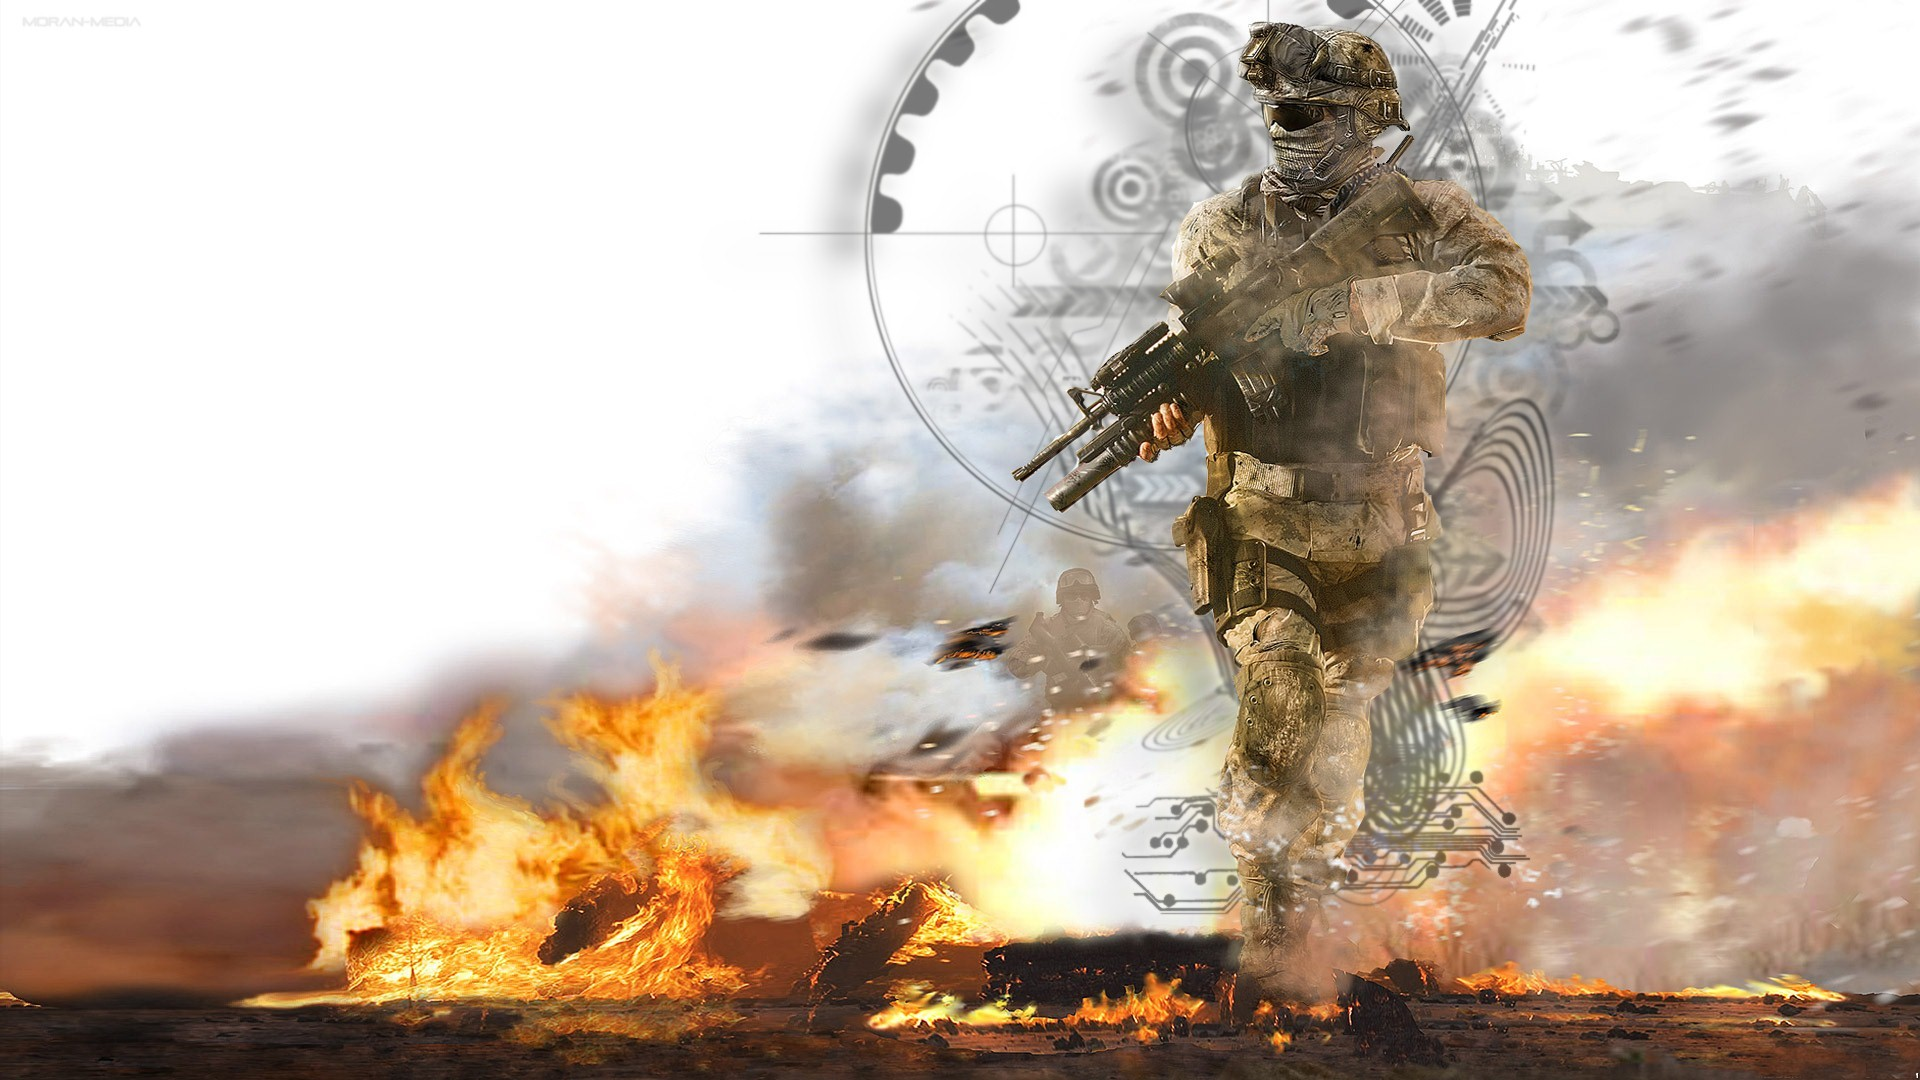 Army Wallpapers Hd Mobile Military Wallpapers For Desktop Free Wallpaper Download 1920x1080